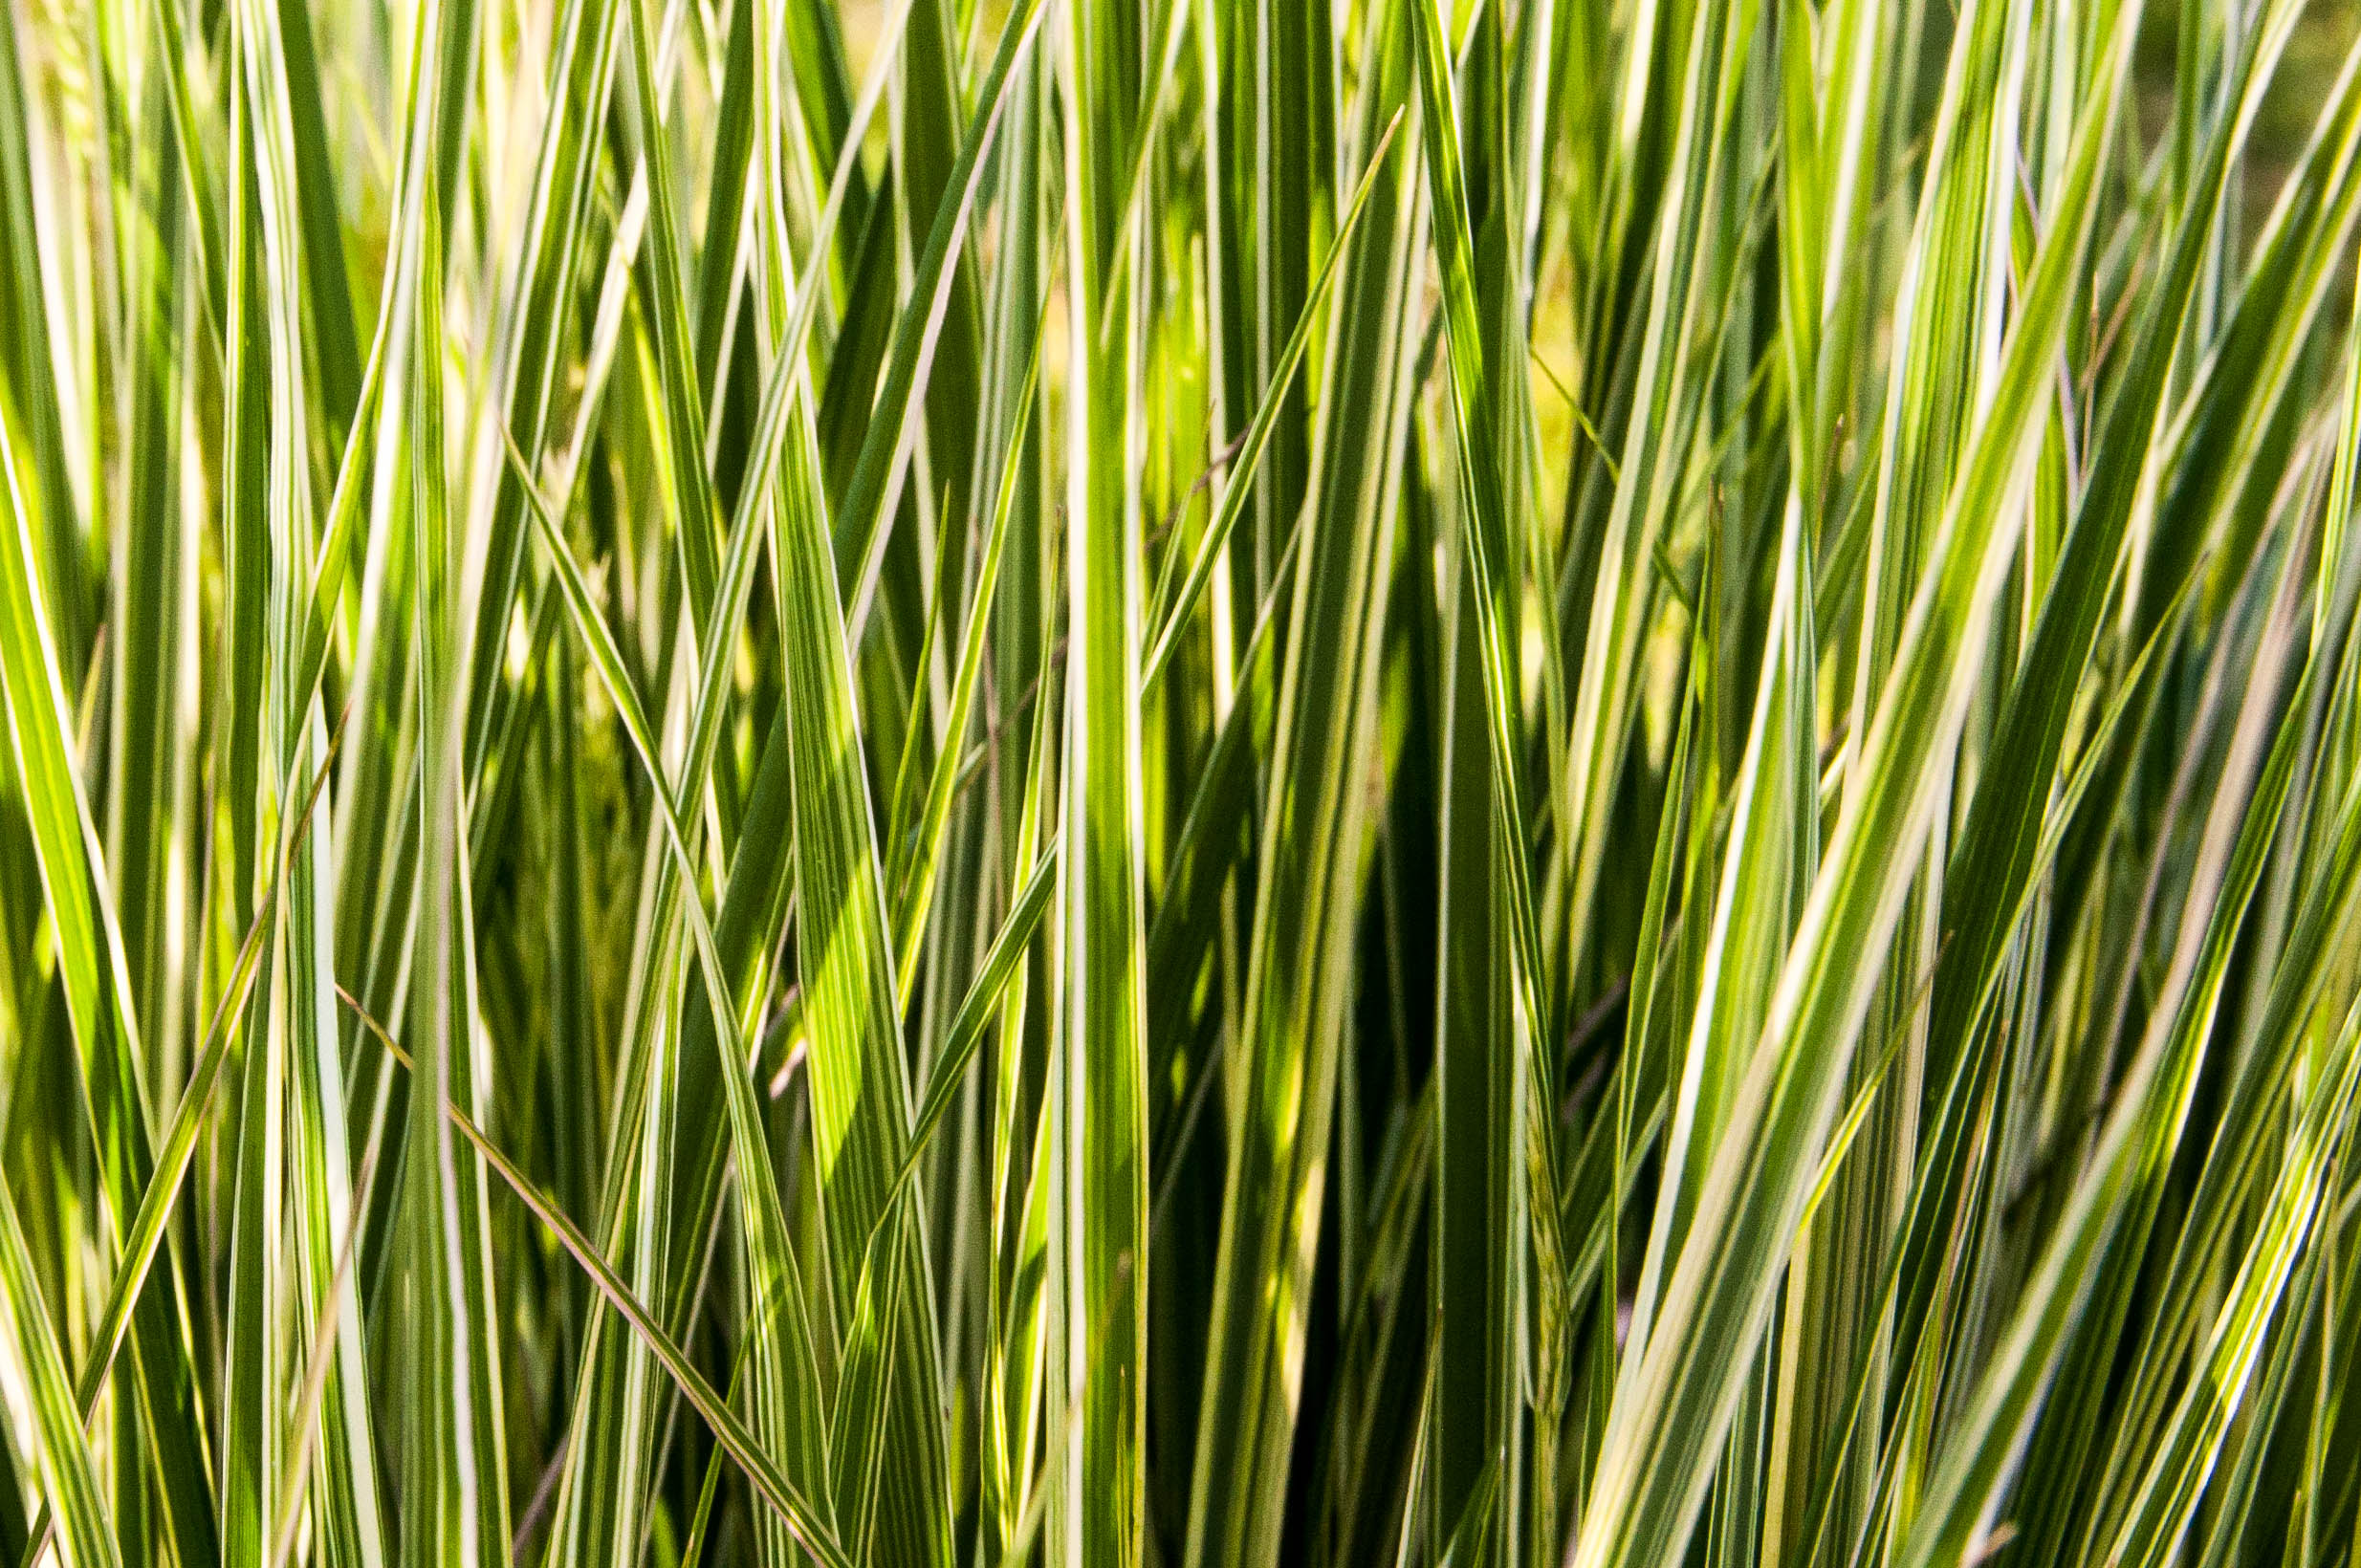 Tall grass in morning sun j b berger photography blog for Tall grasses for sun